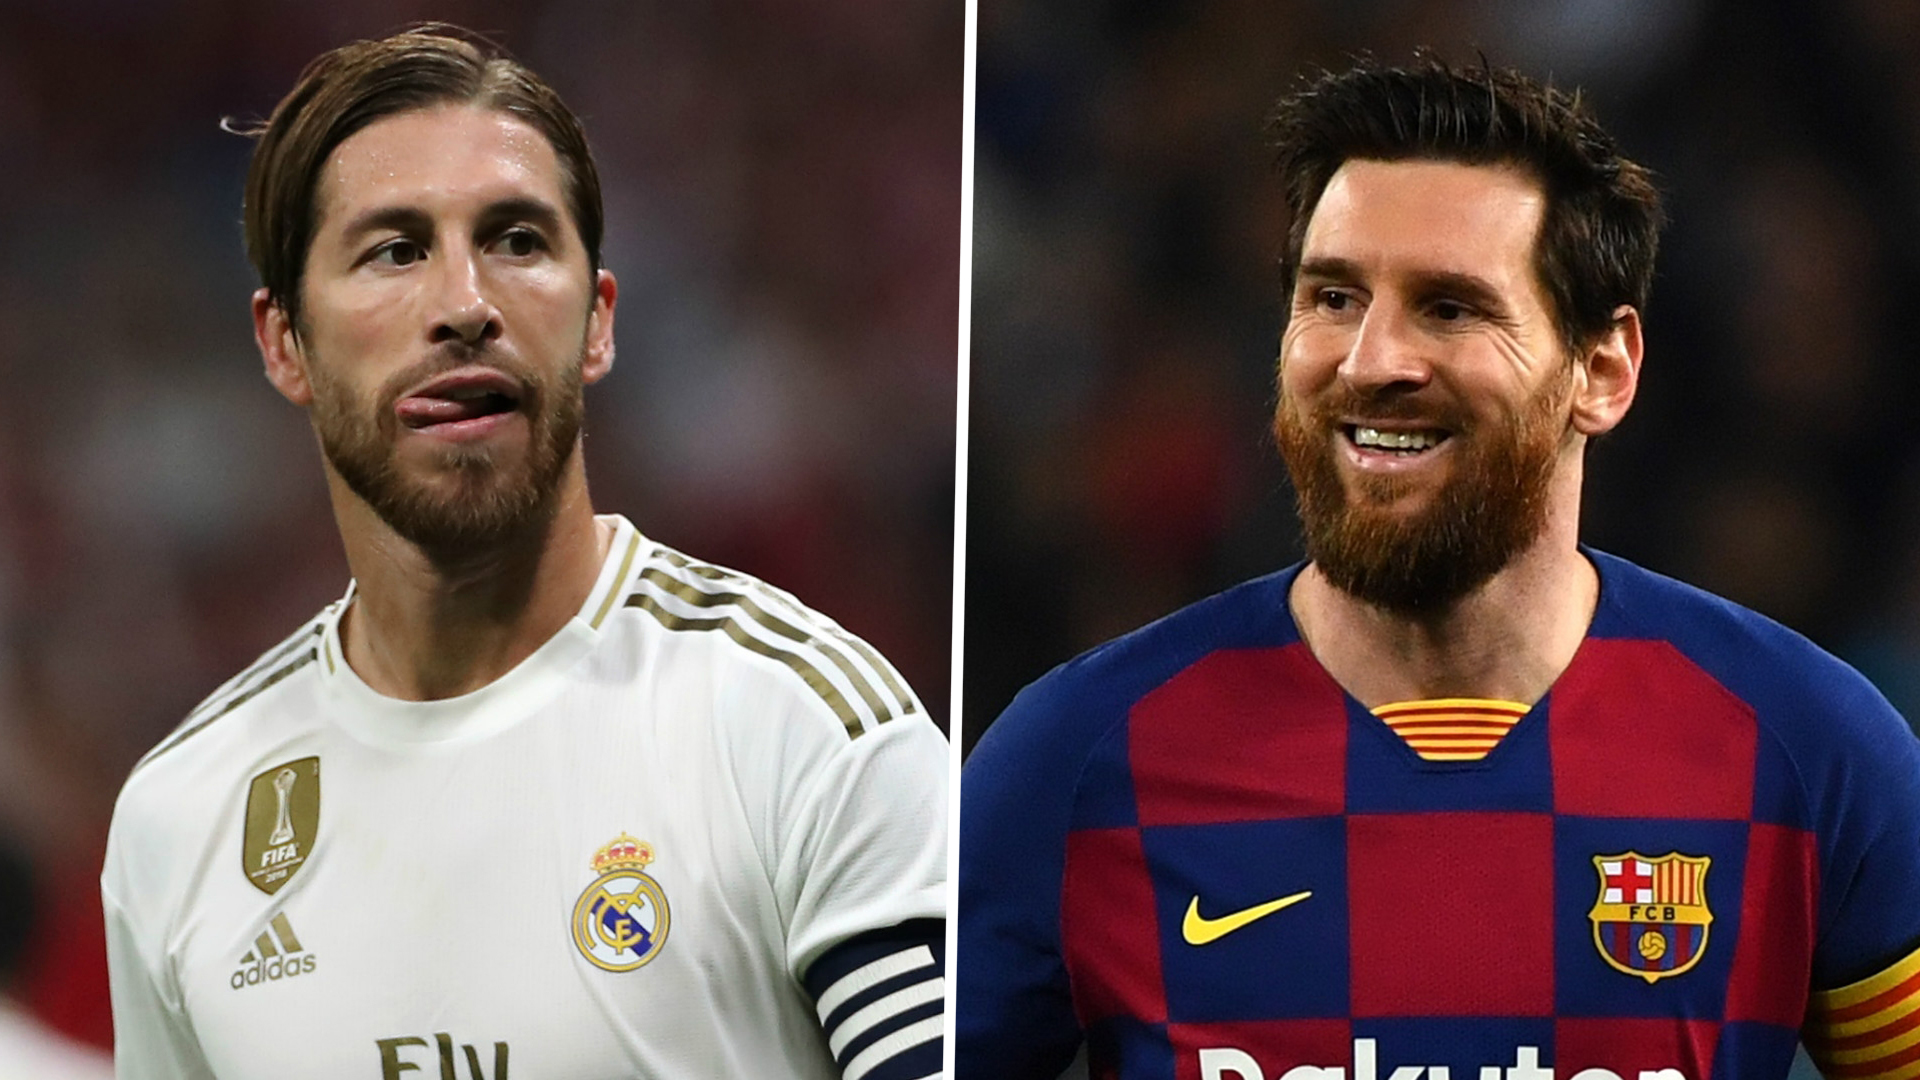 Real Madrid captain Ramos wants Messi to stay at Barcelona